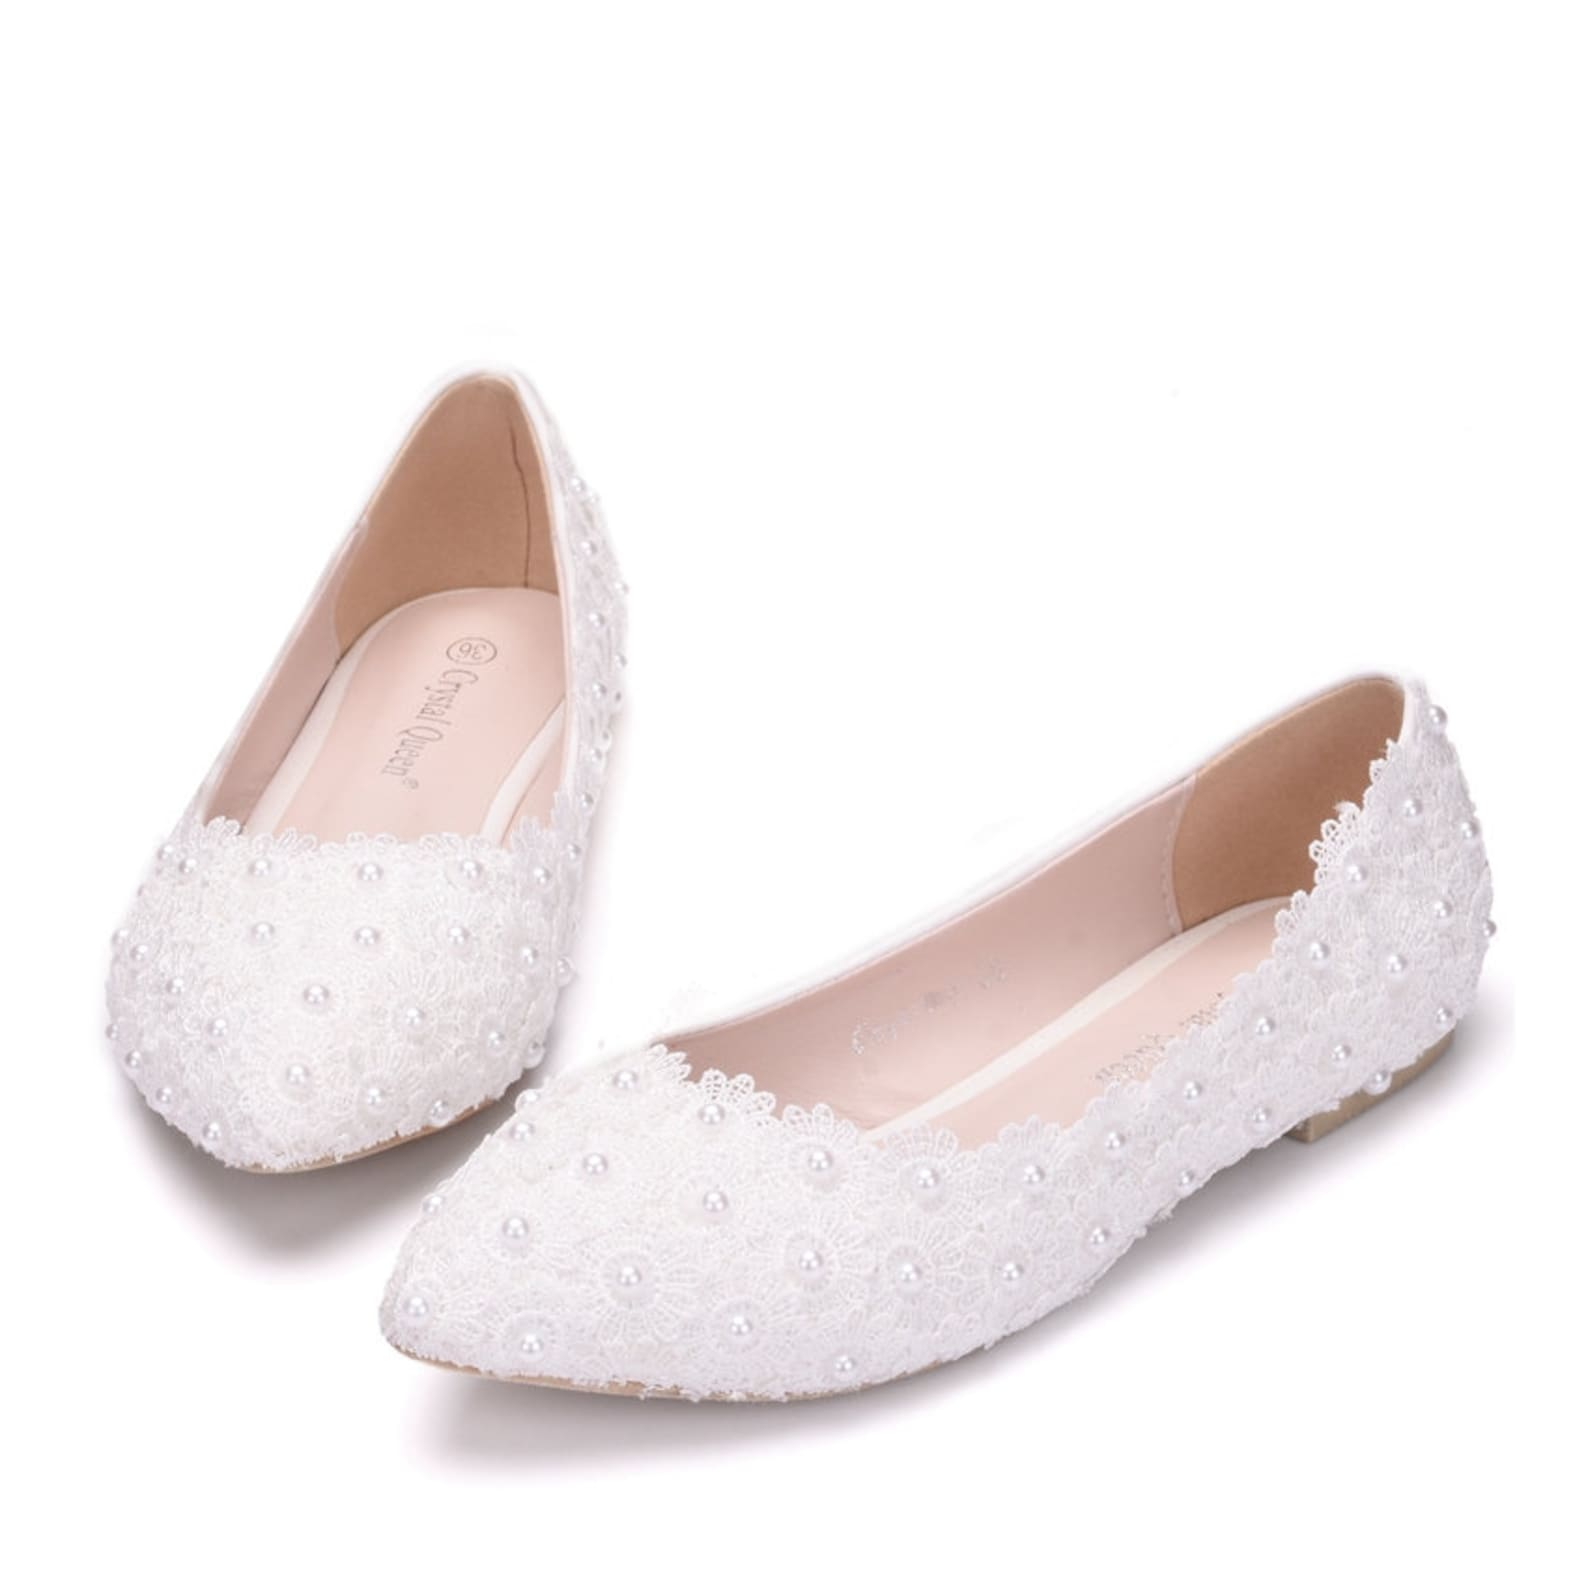 crystal queen white lace wedding shoes flat heels pointed toe plus size ballet flats women bridal shoes